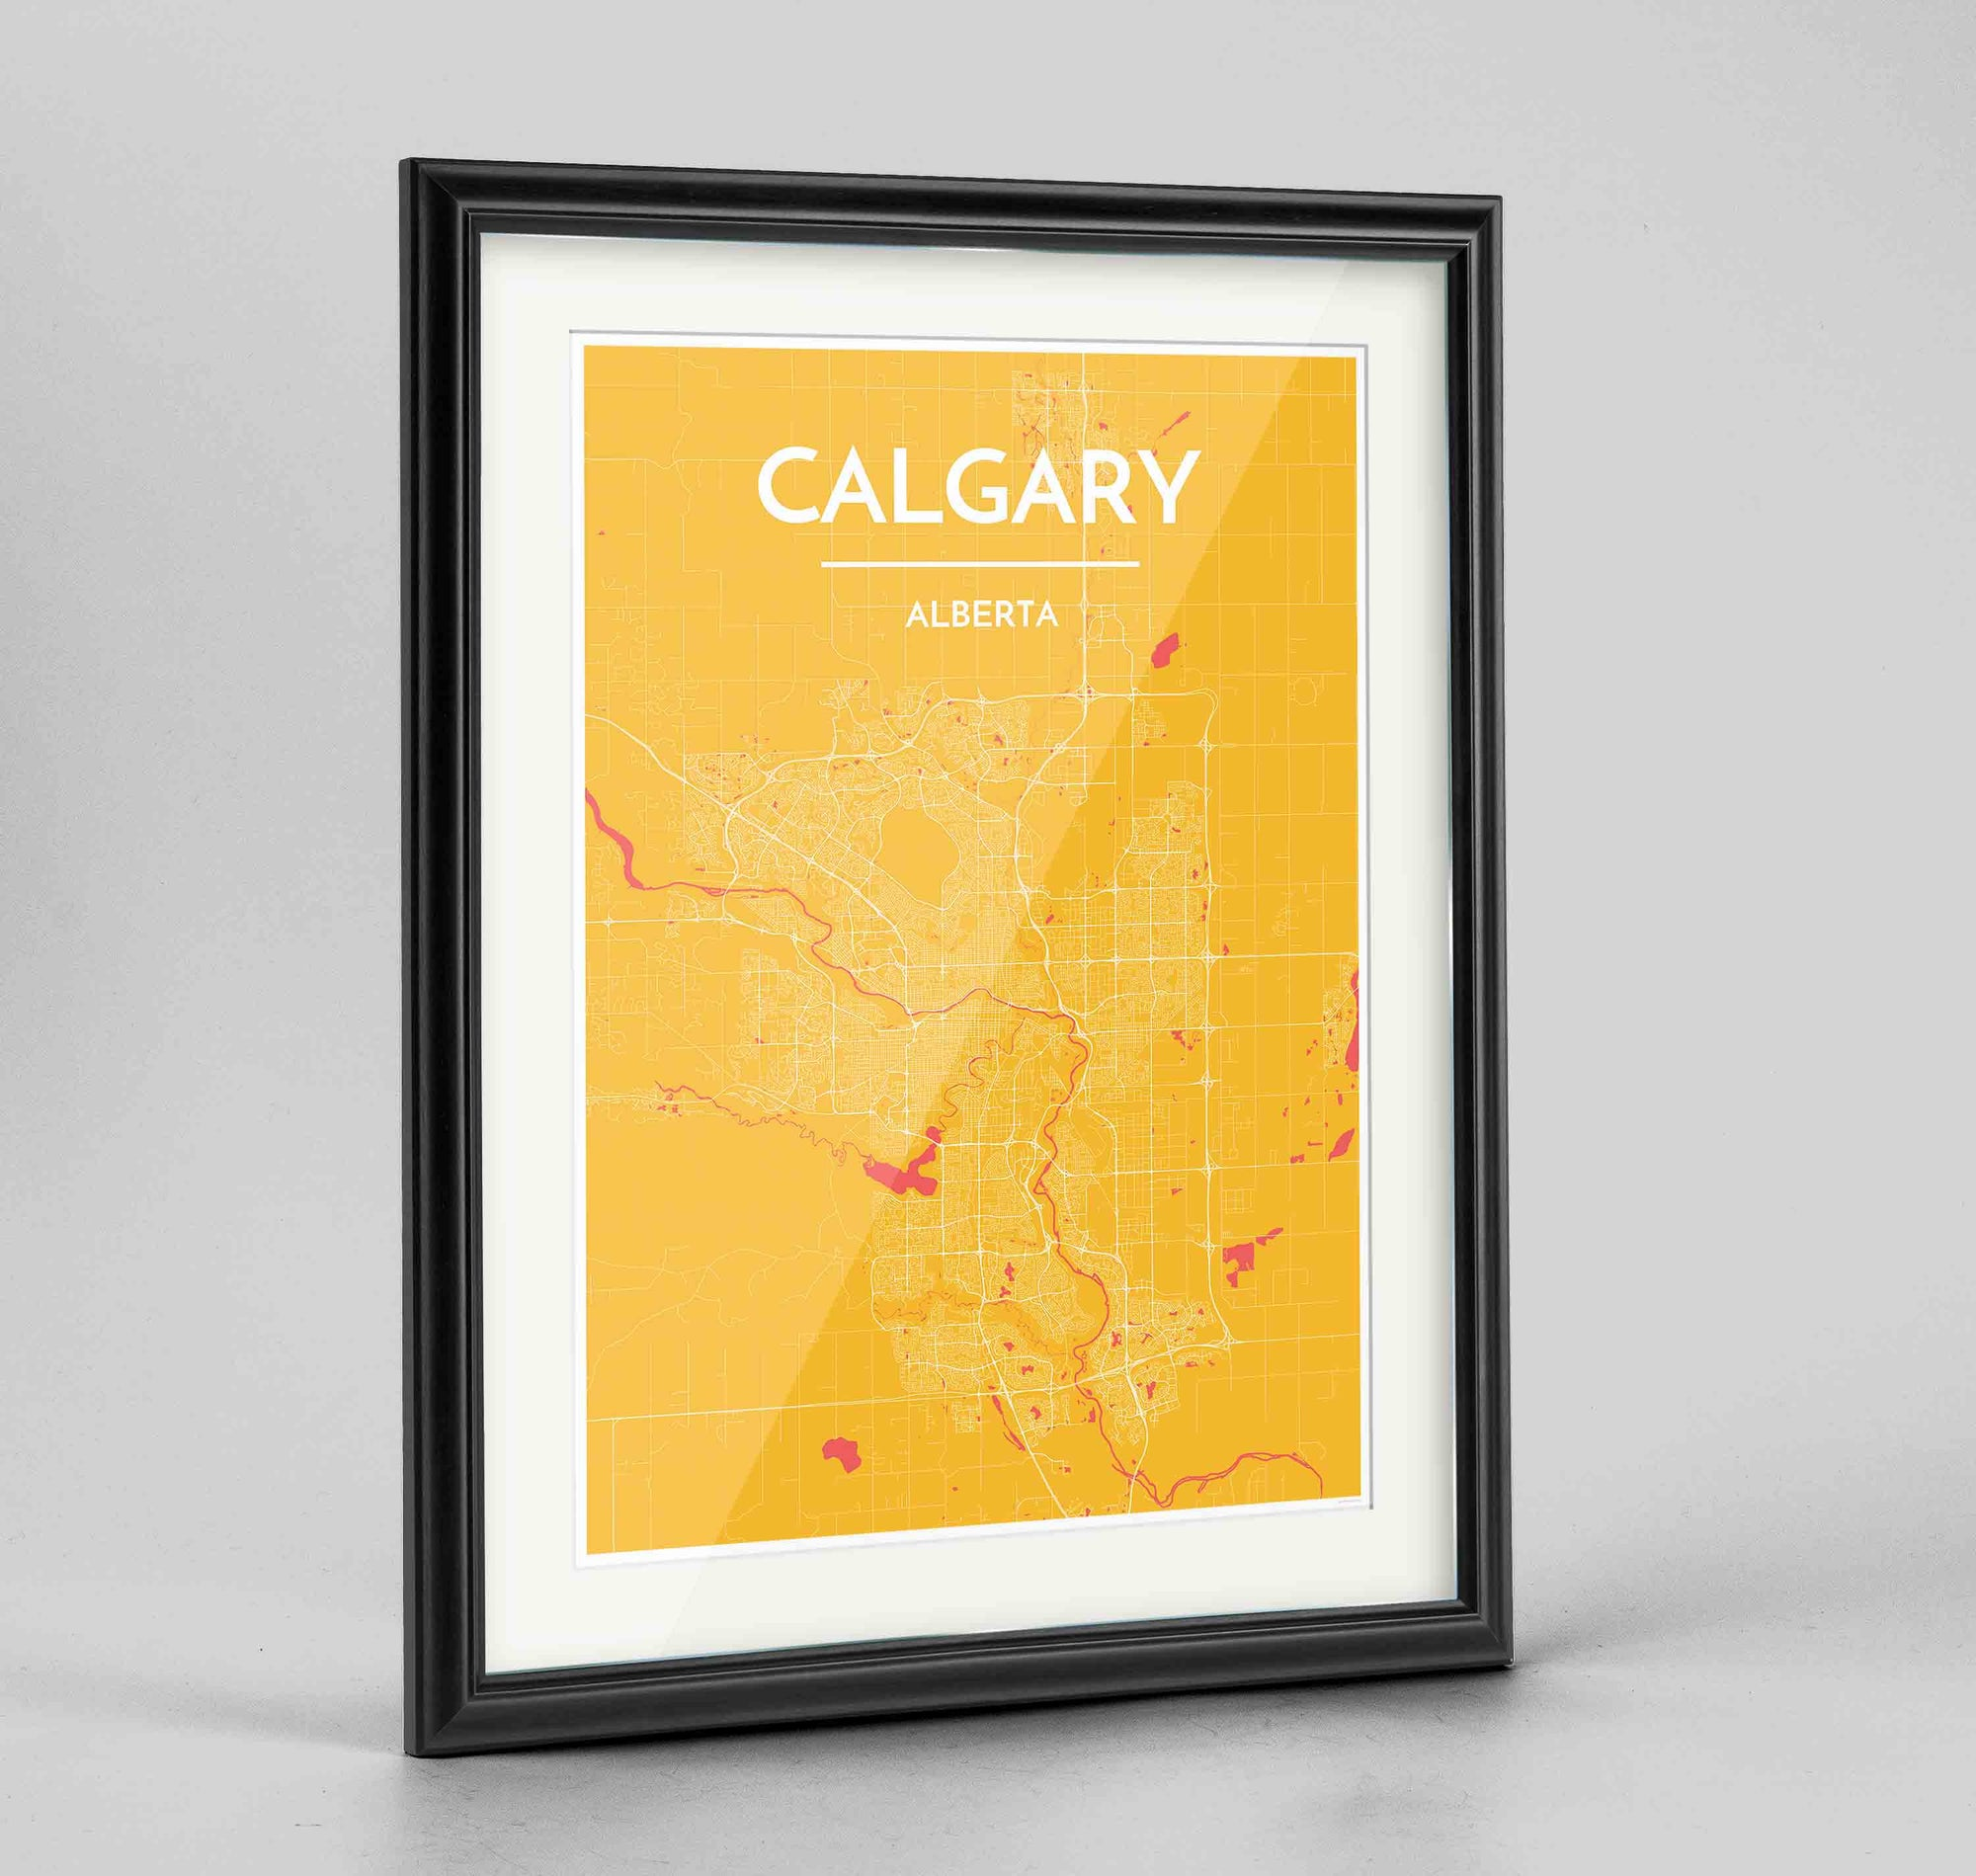 "Framed Calgary City Map 24x36"" Traditional Black frame Point Two Design Group"